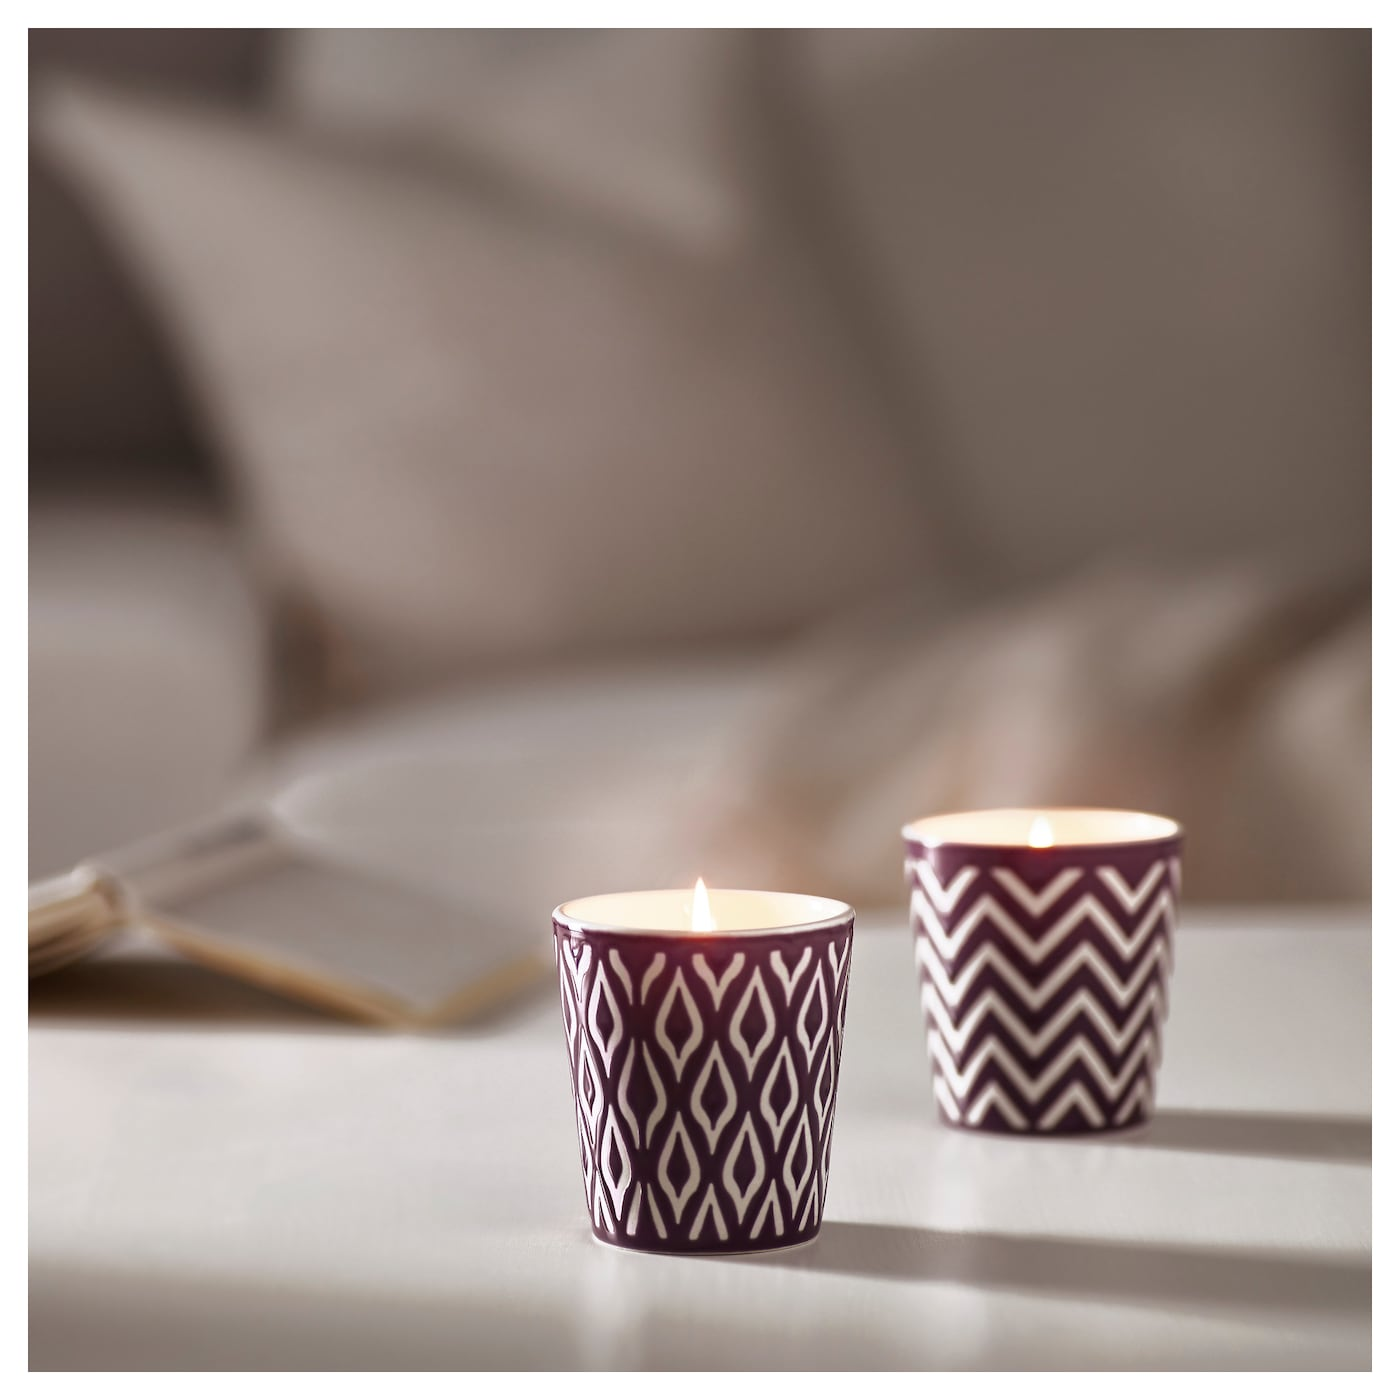 IKEA SPRALLA scented candle in pot The scent of aloe vera creates a harmonious atmosphere at home.